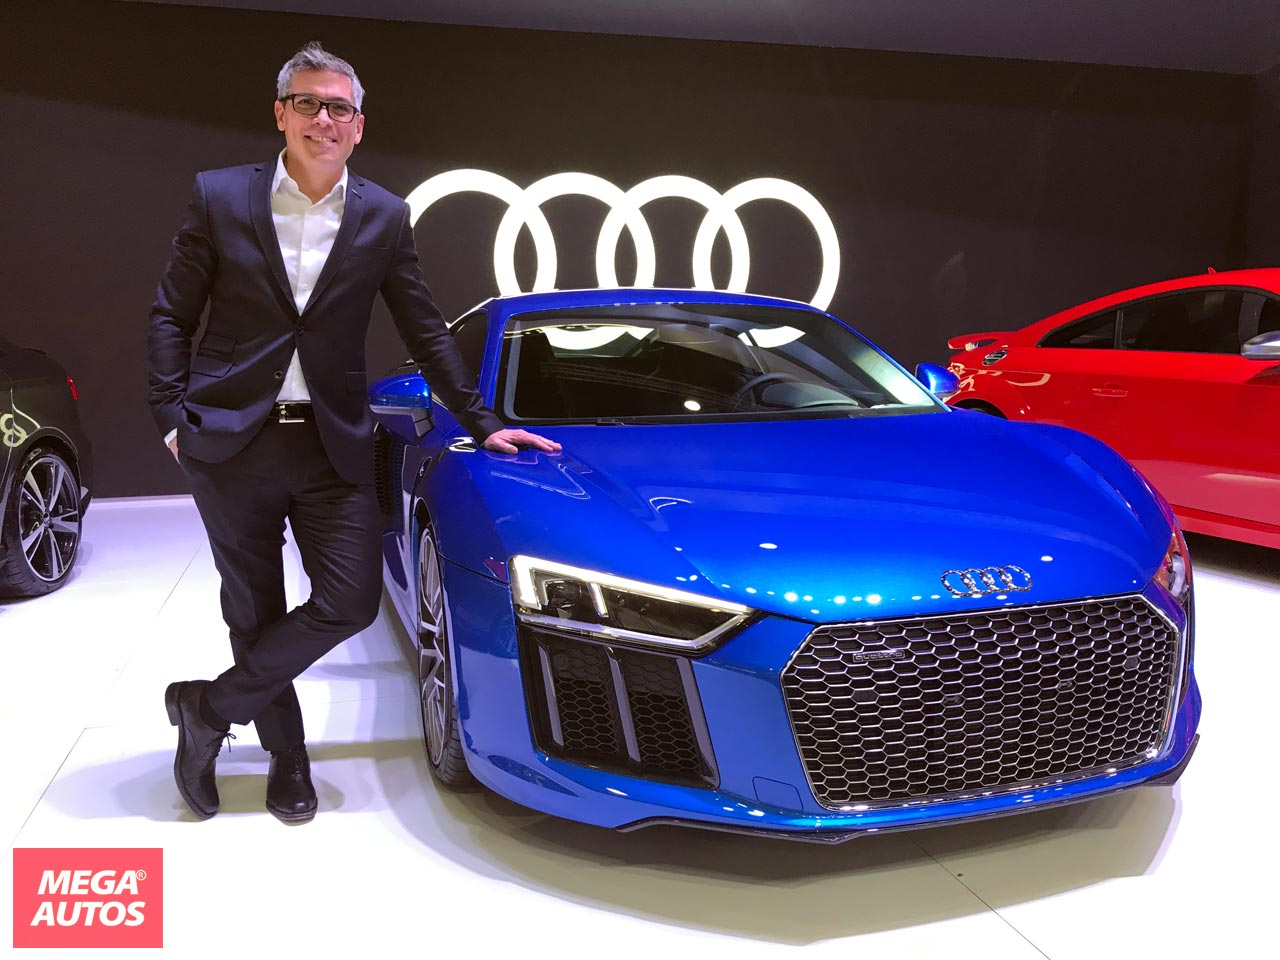 Gonzalo Cassina, Gerente de Marketing de Audi Argentina, junto al R8 V10 Plus.